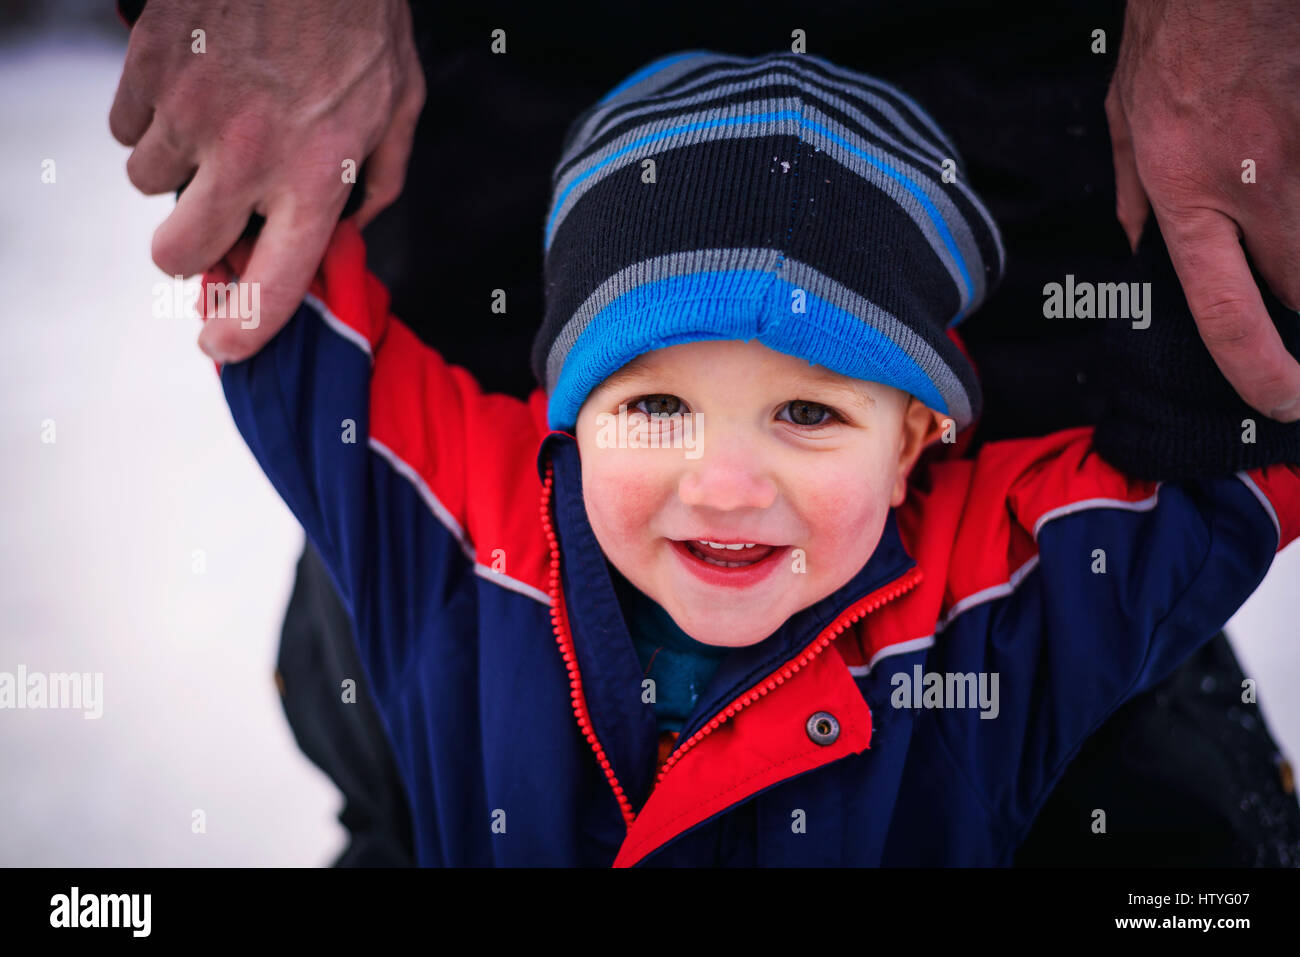 Father holding his toddlers arms - Stock Image